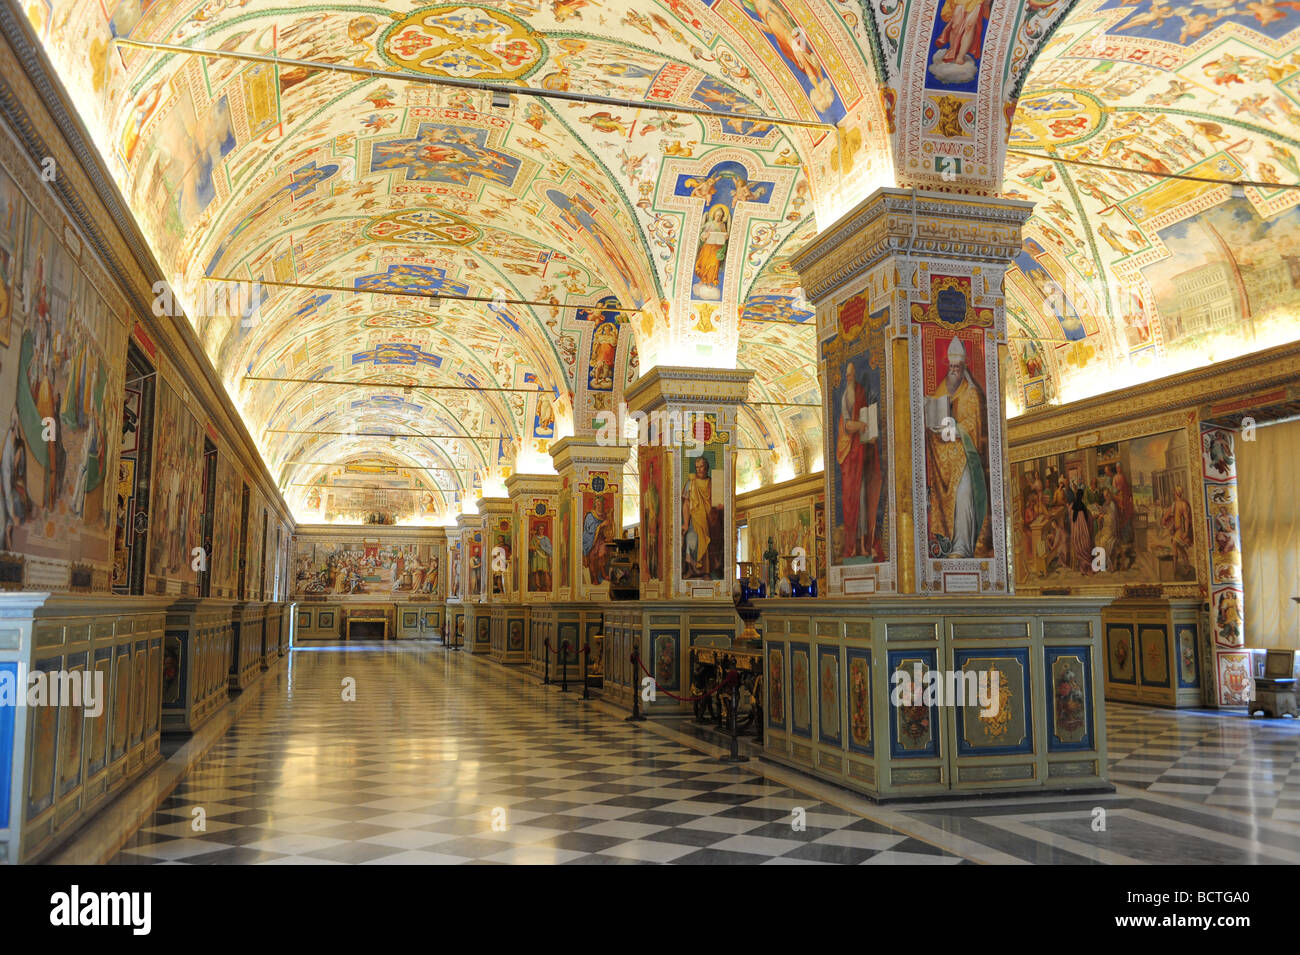 Europe vatican city Vatican Museum interior of the Vatican Library Stock Photo